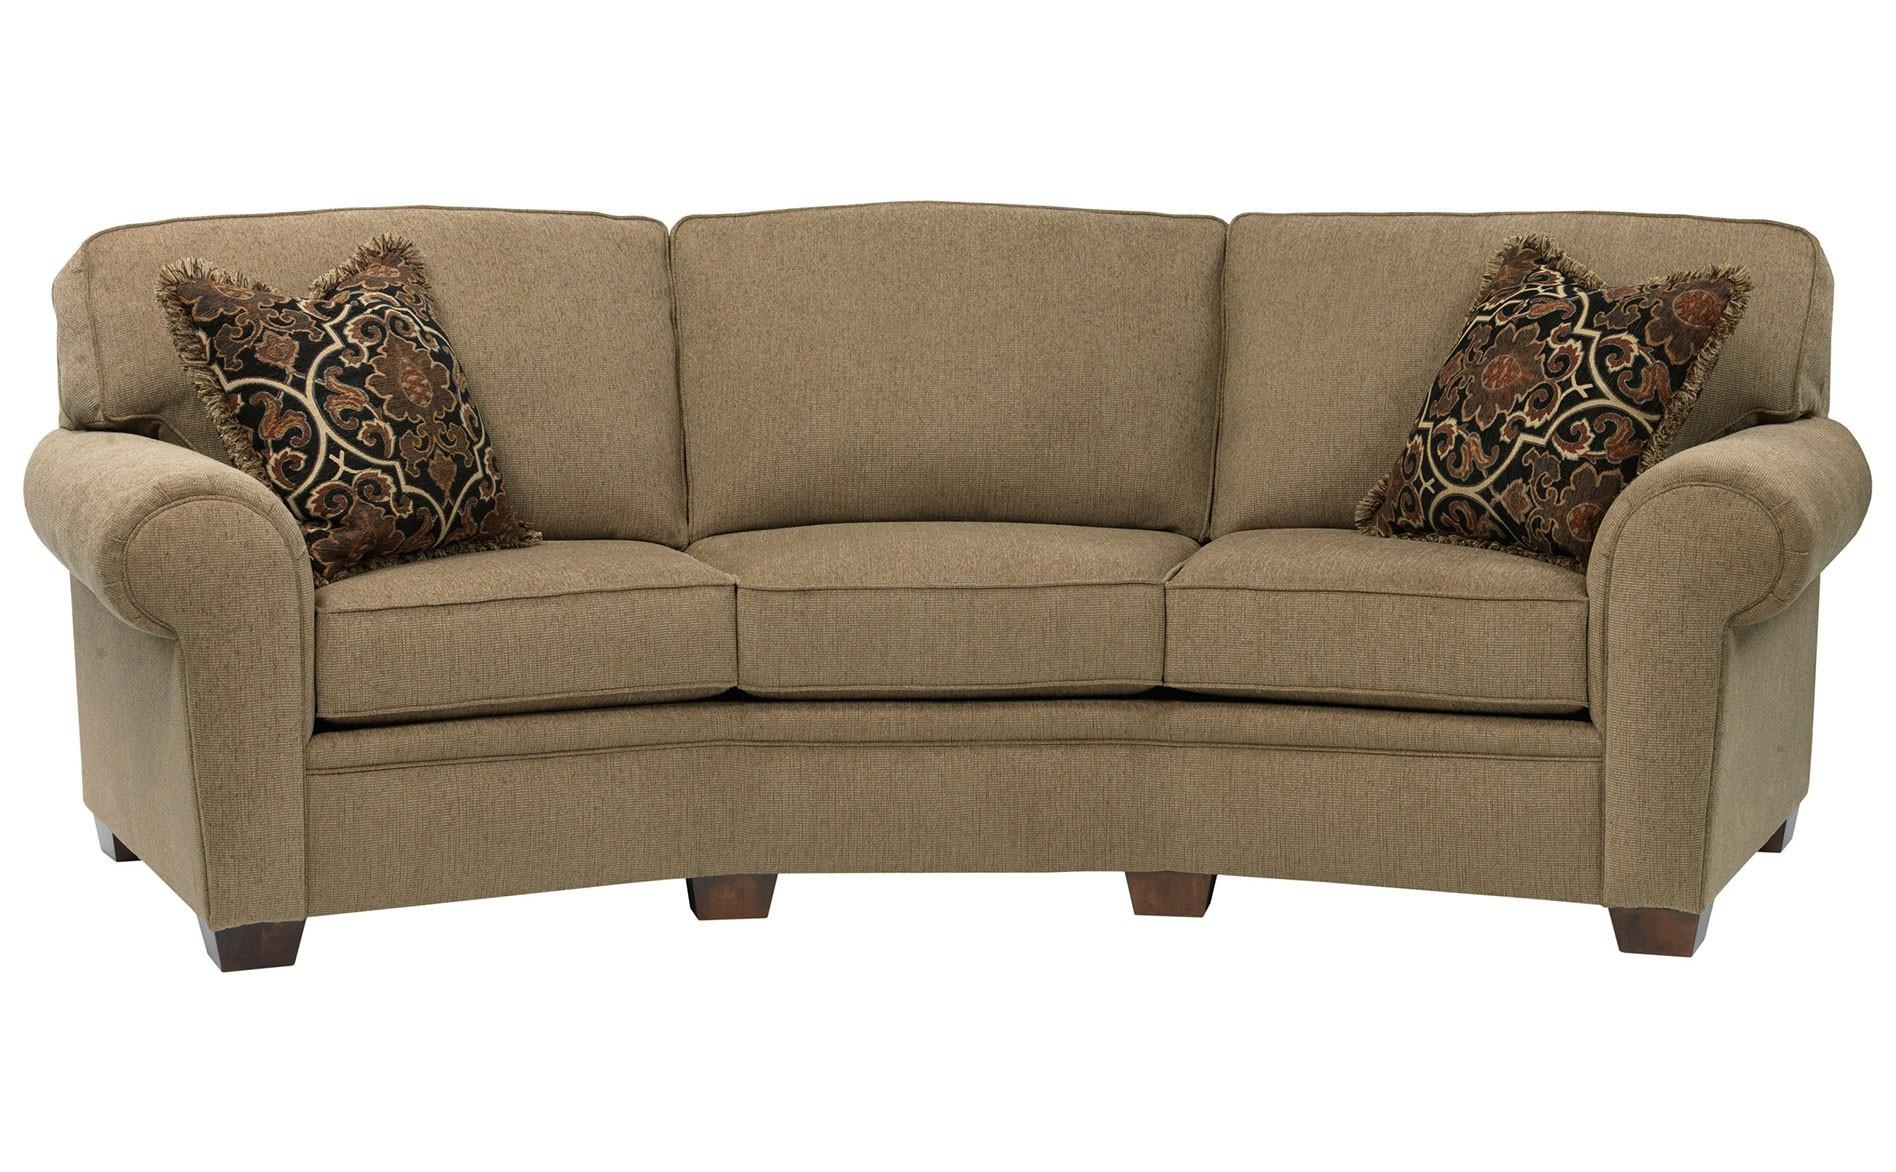 Furniture: Broyhill Mission Furniture | Broyhill Sofas | Broyhill Within Broyhill Sectional Sofa (View 11 of 15)